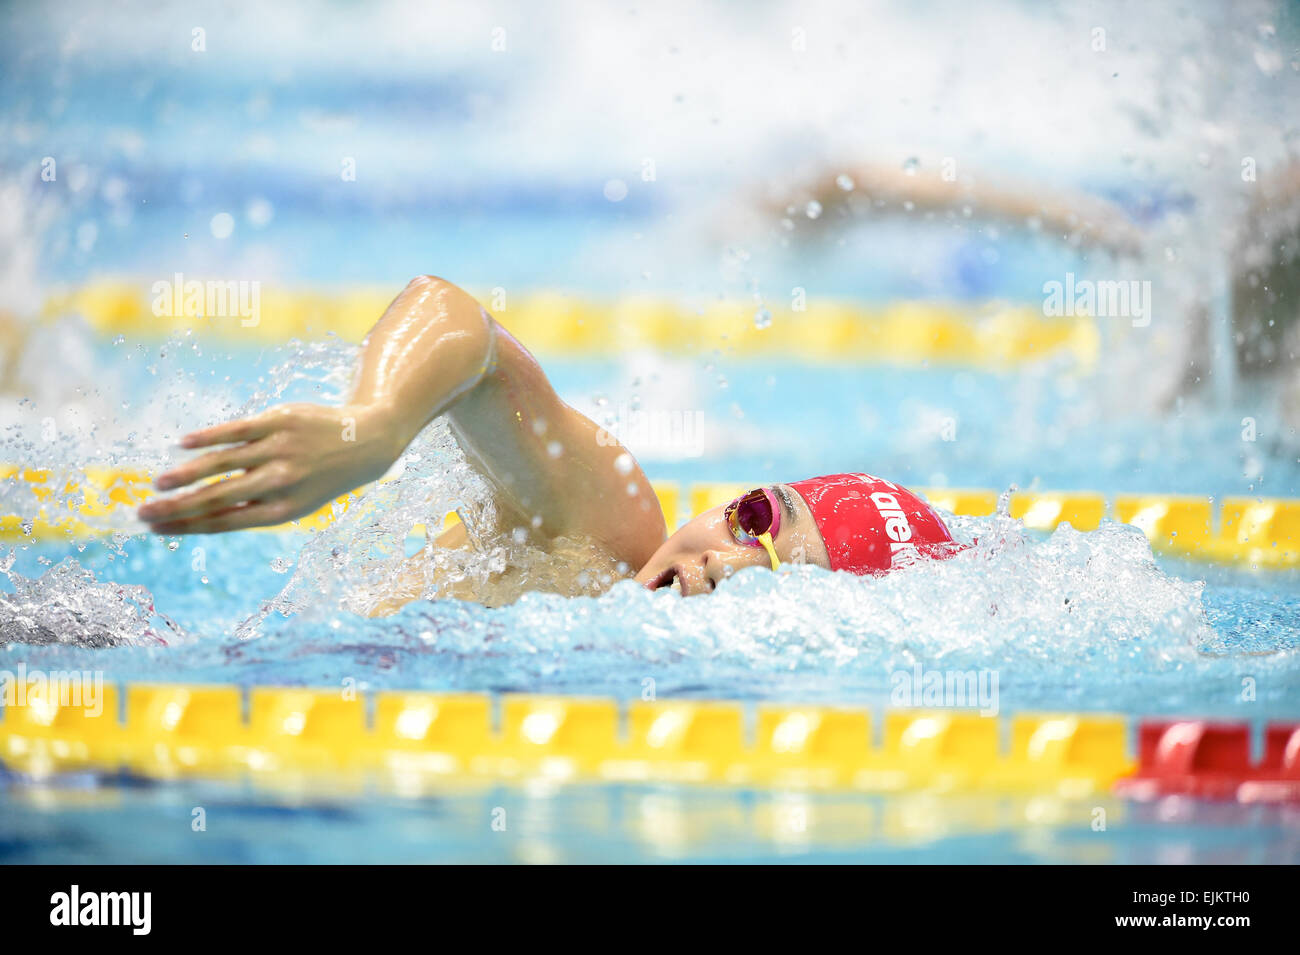 tatsumi international swimming pool tokyo japan 28th mar 2015 momoka kuriyama march 28 2015 swimming the 37th joc junior olympic cup womens 100m - Olympic Swimming Pool 2015